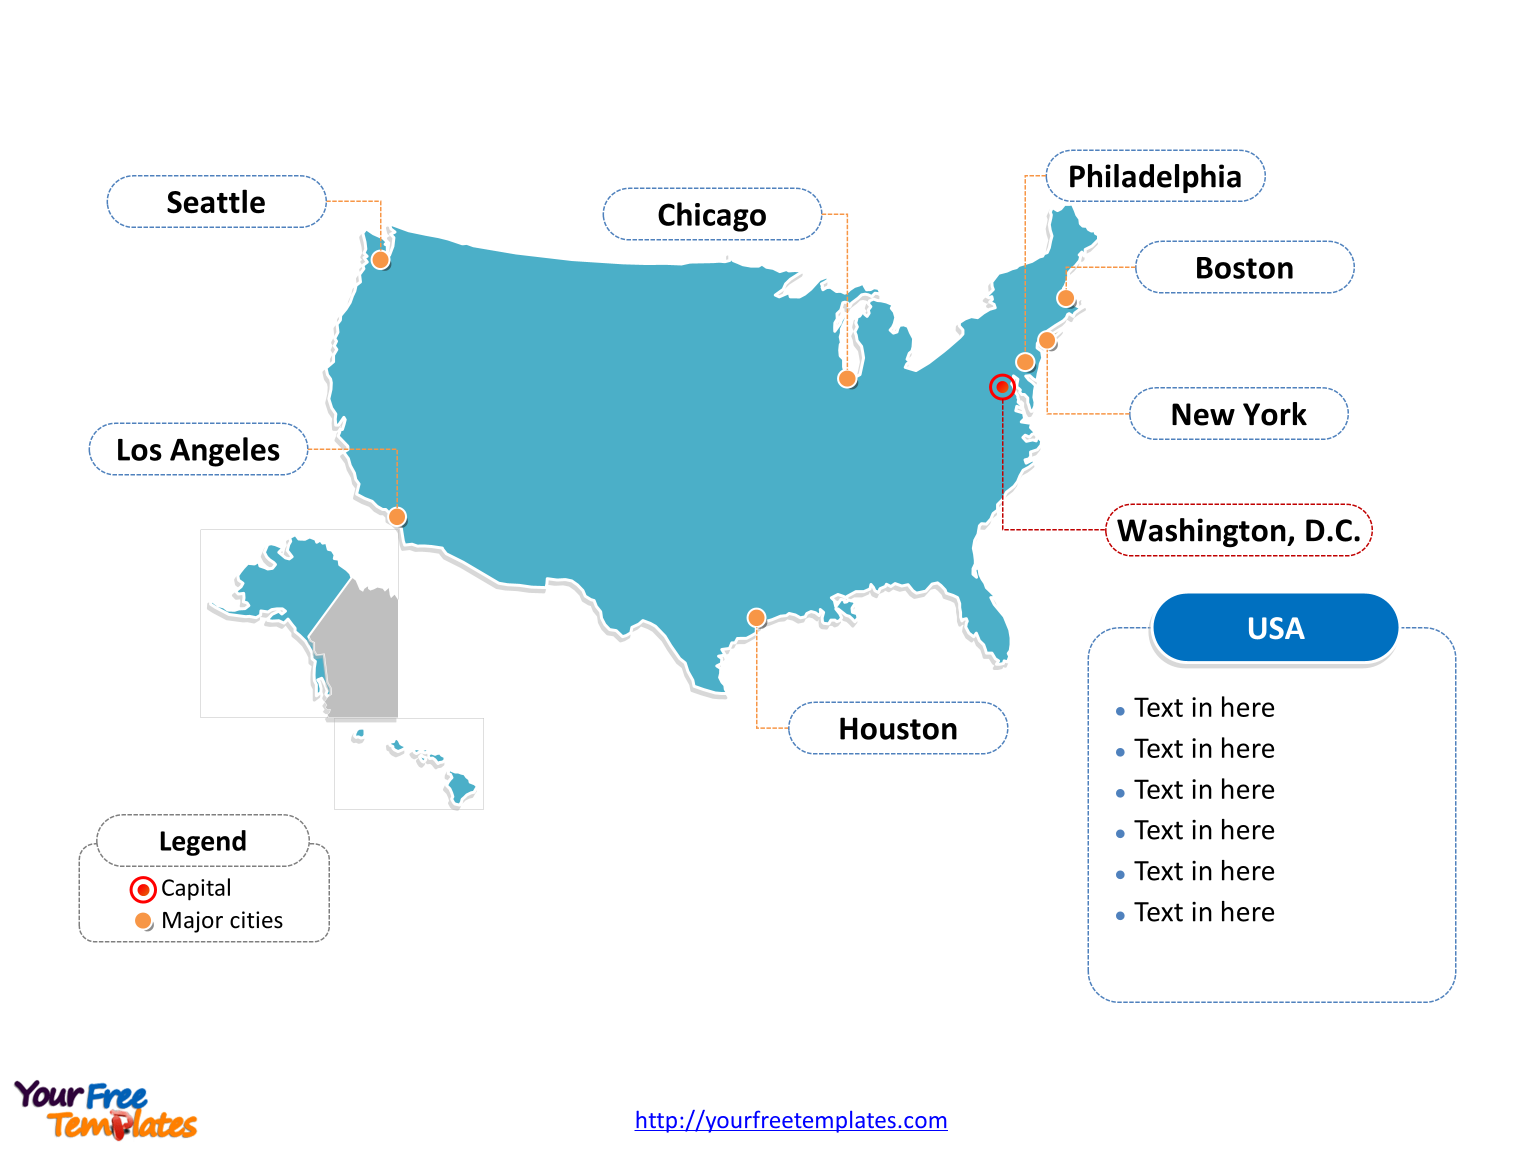 free usa powerpoint map - free powerpoint templates, Modern powerpoint